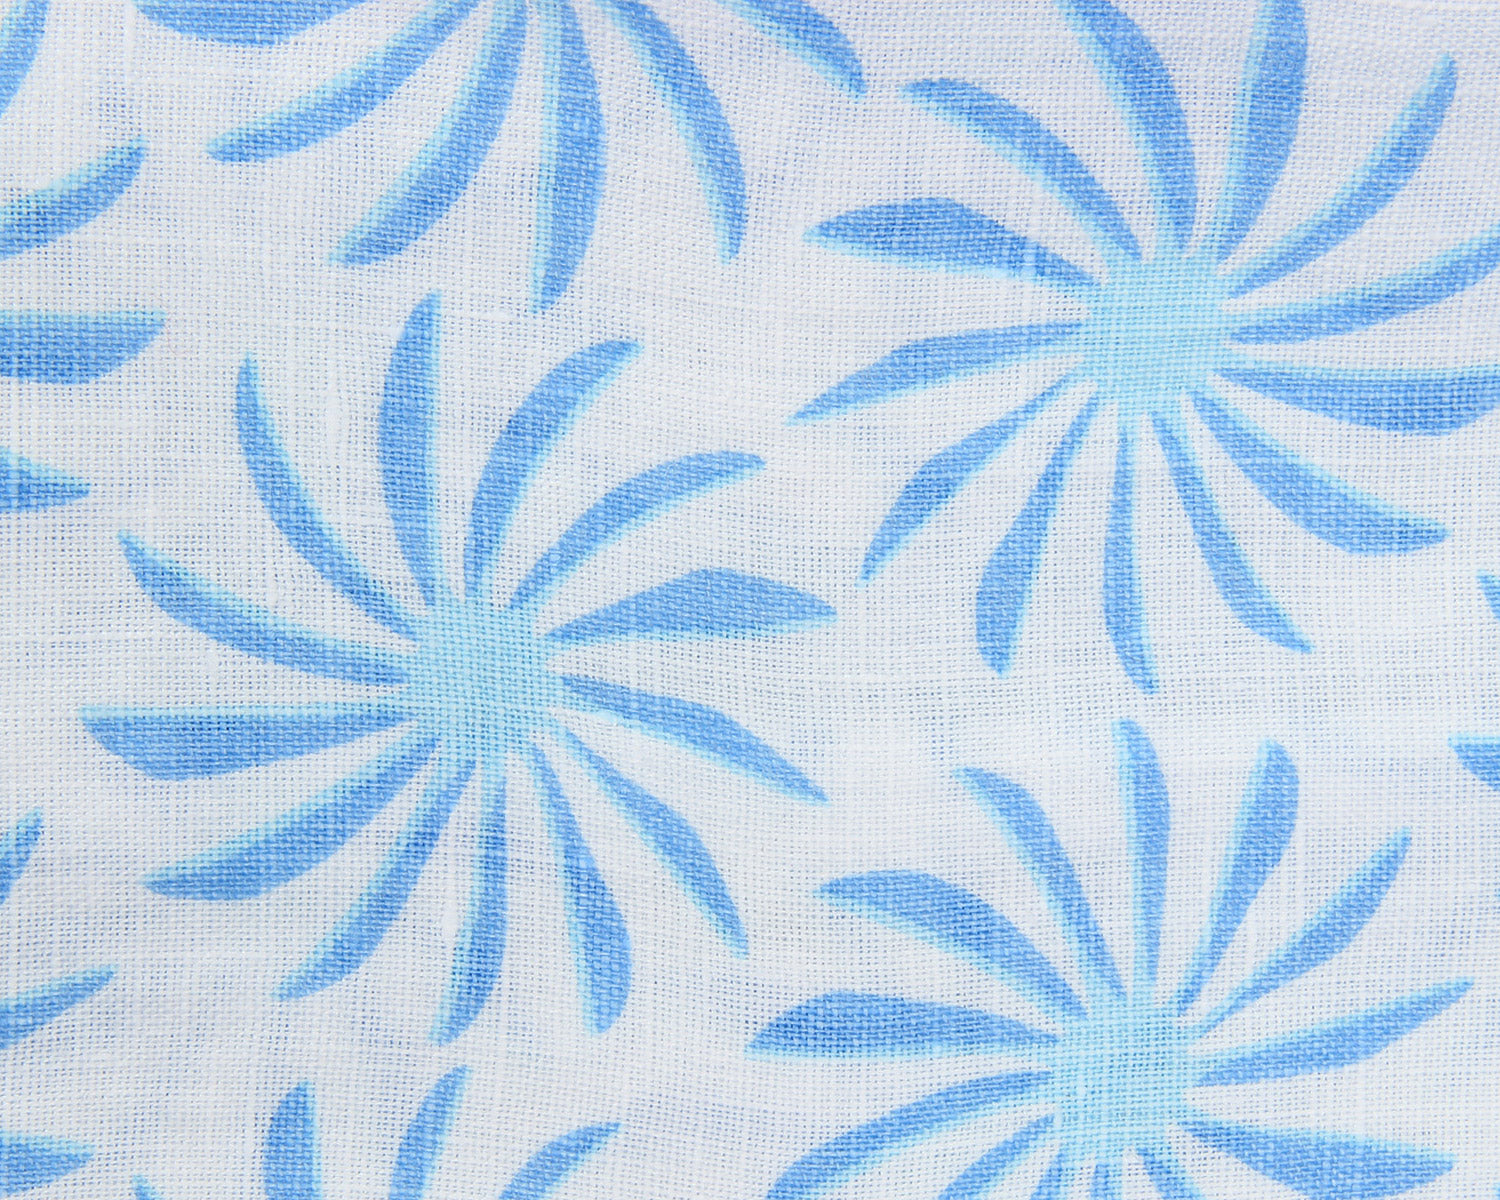 Lotty B Tablecloth & Napkin set: CACTUS - BLUE swatch